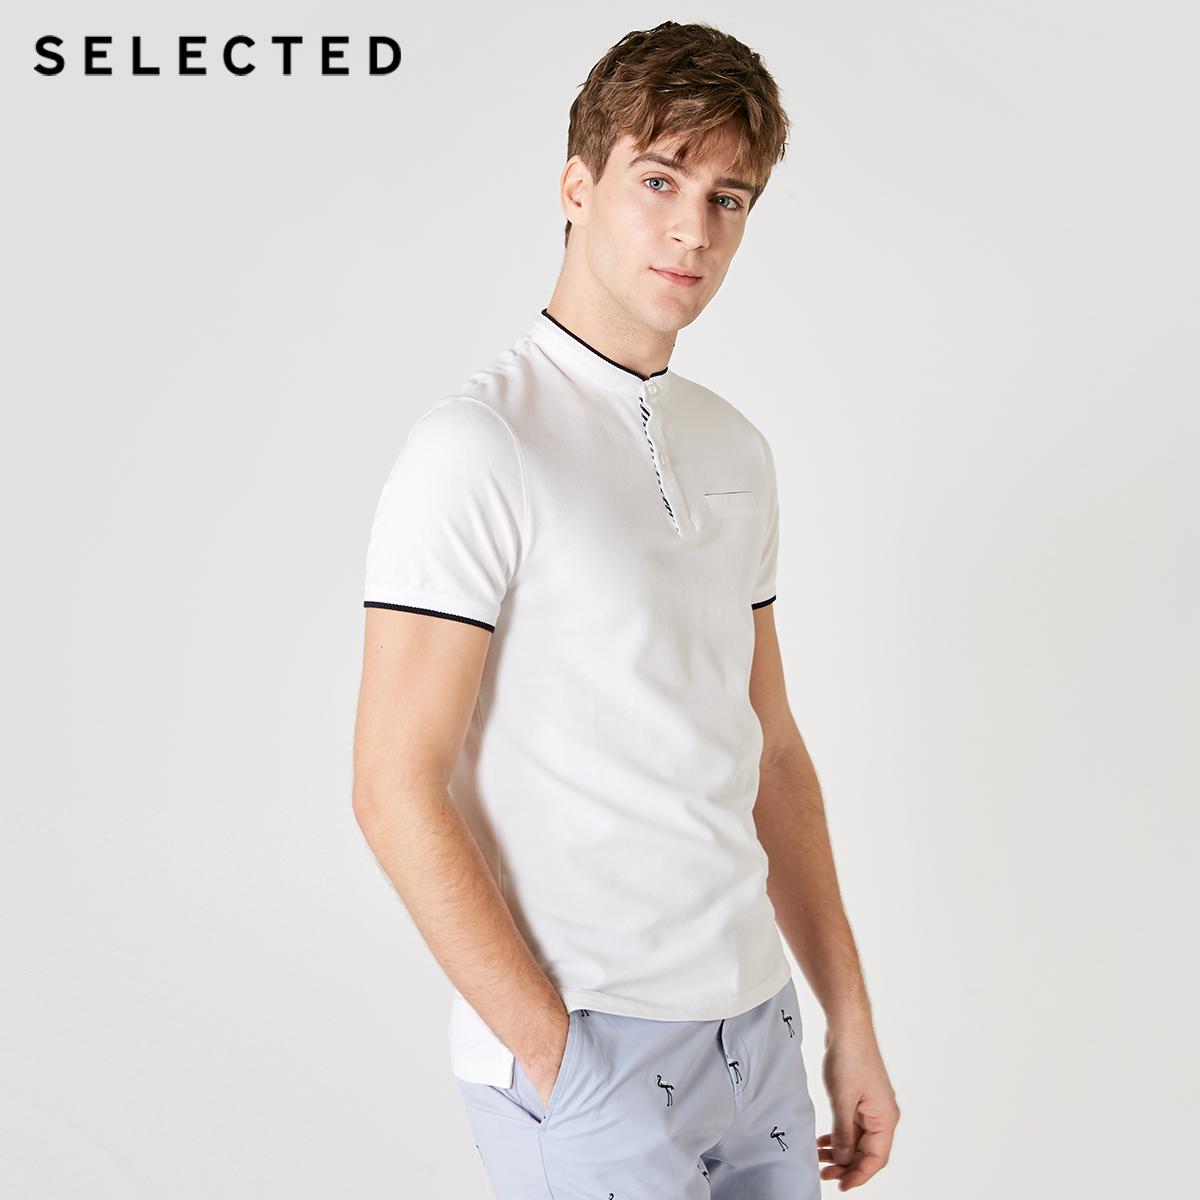 SELECTED Men's Summer Slim Fit Contrasting Short-sleeved Poloshirt S|419206562